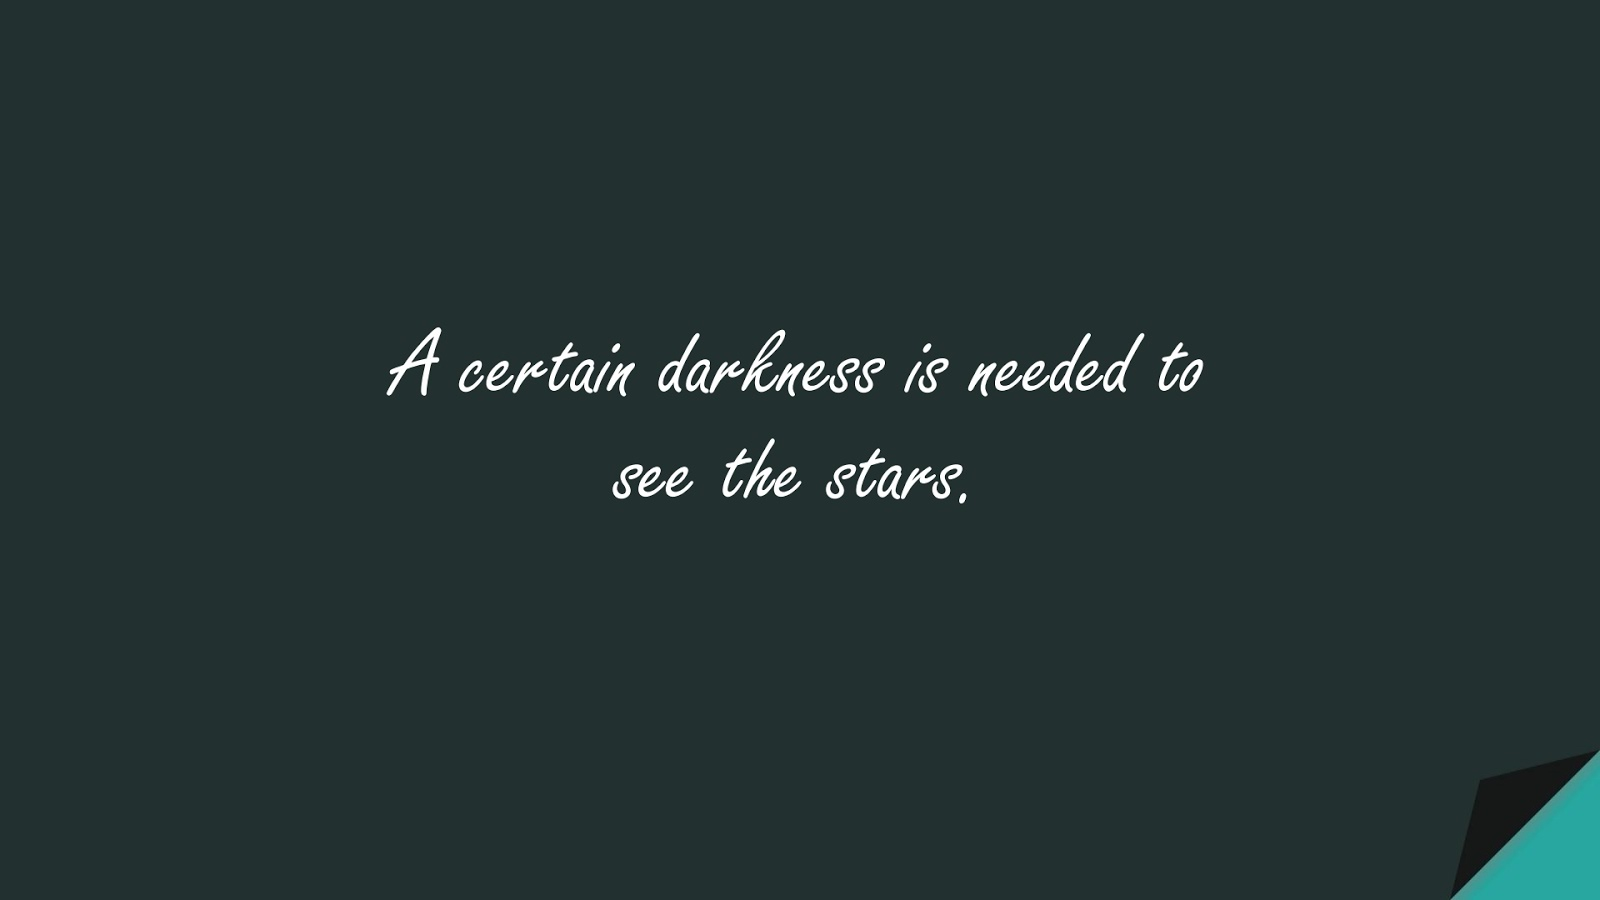 A certain darkness is needed to see the stars.FALSE